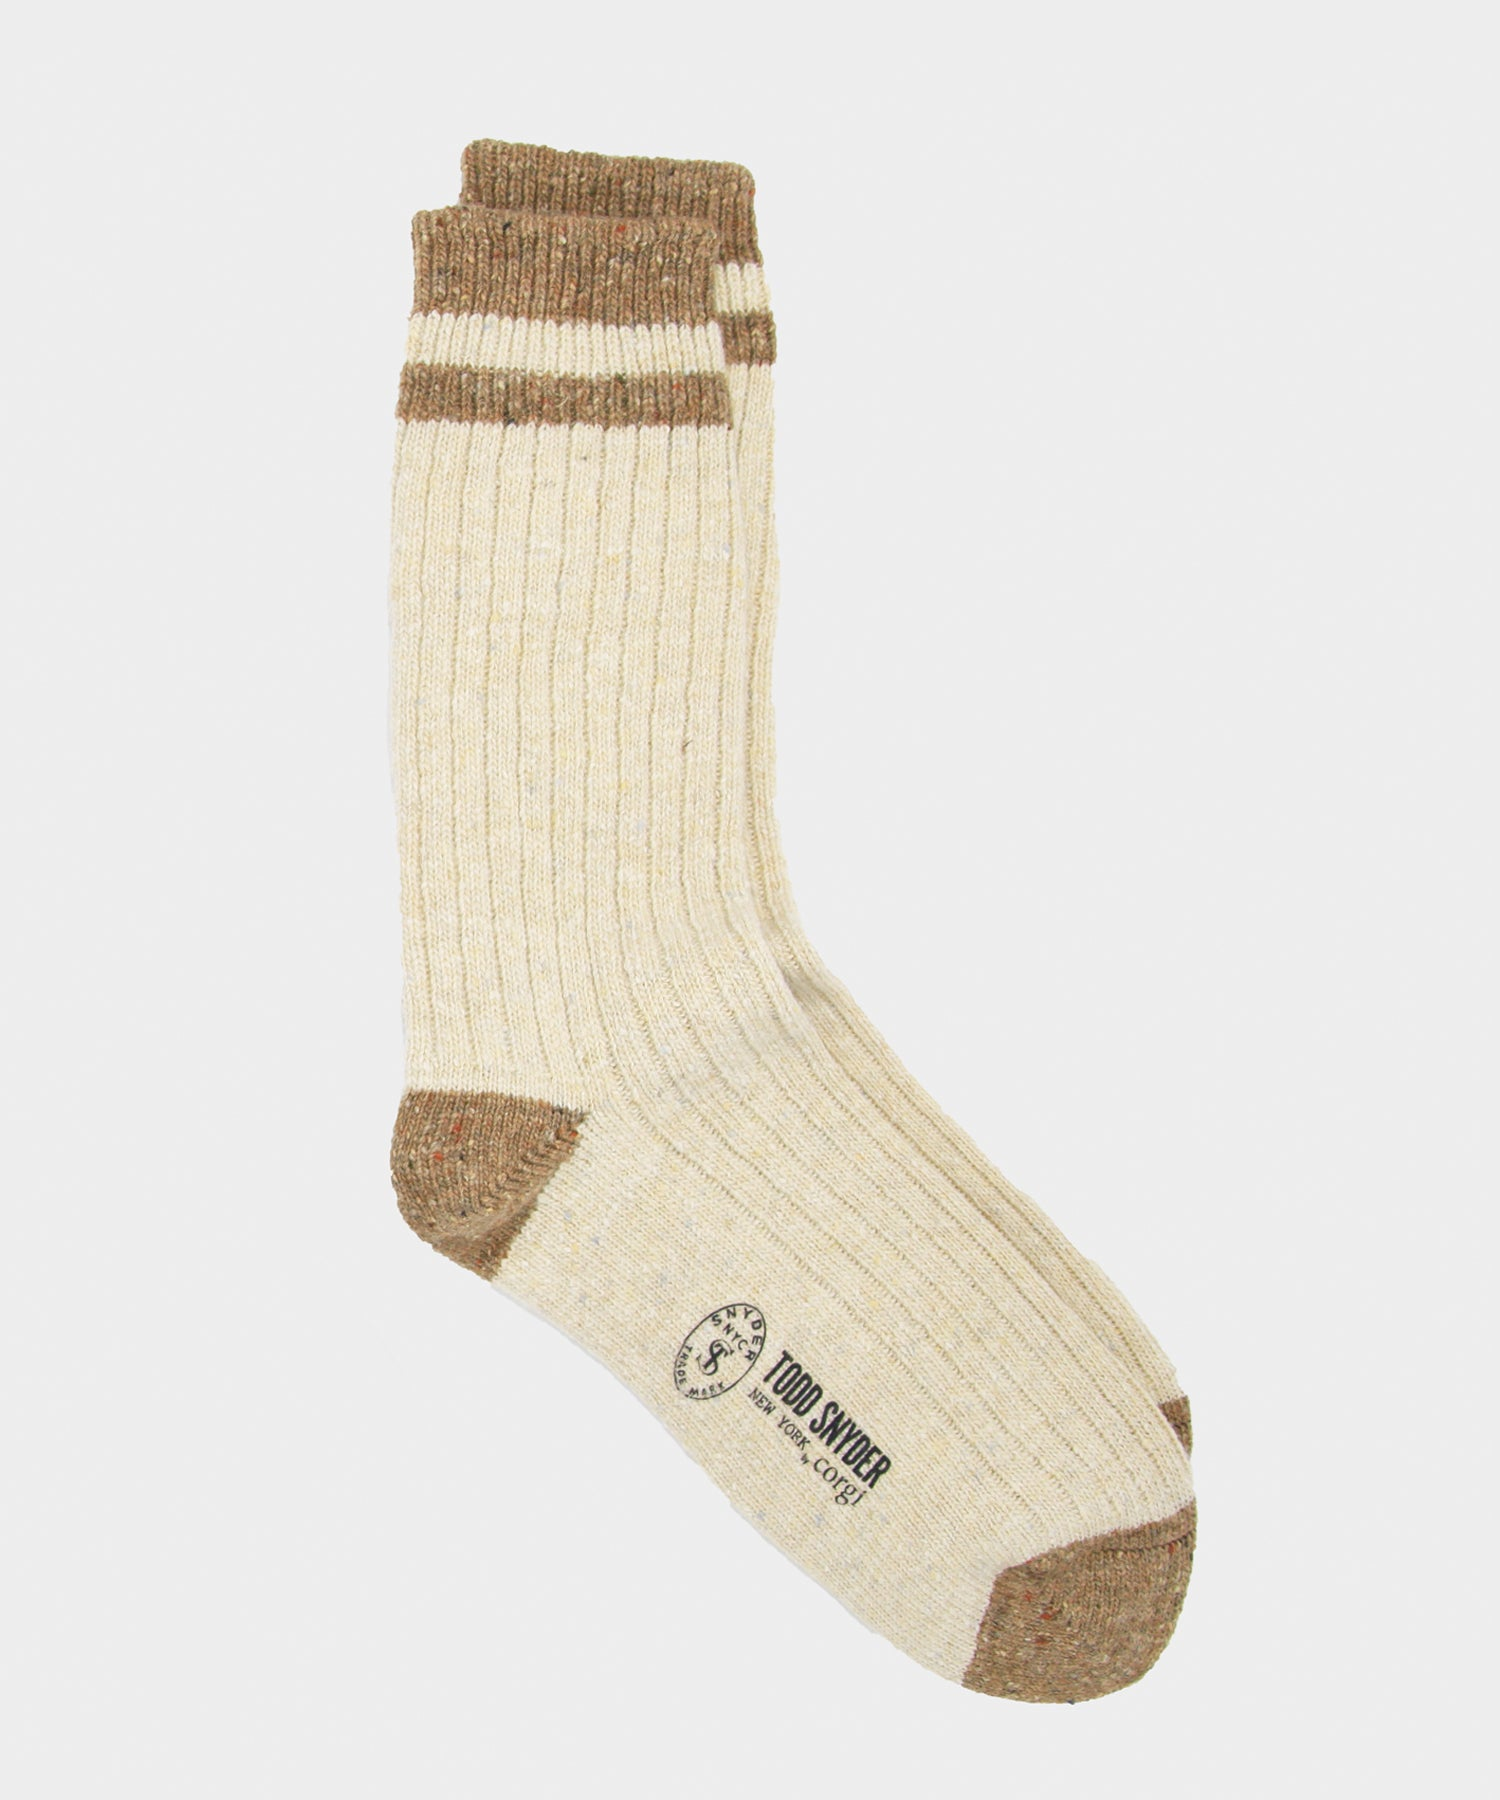 Corgi Tipped Irish Donegal Wool Socks in Ecru/barley